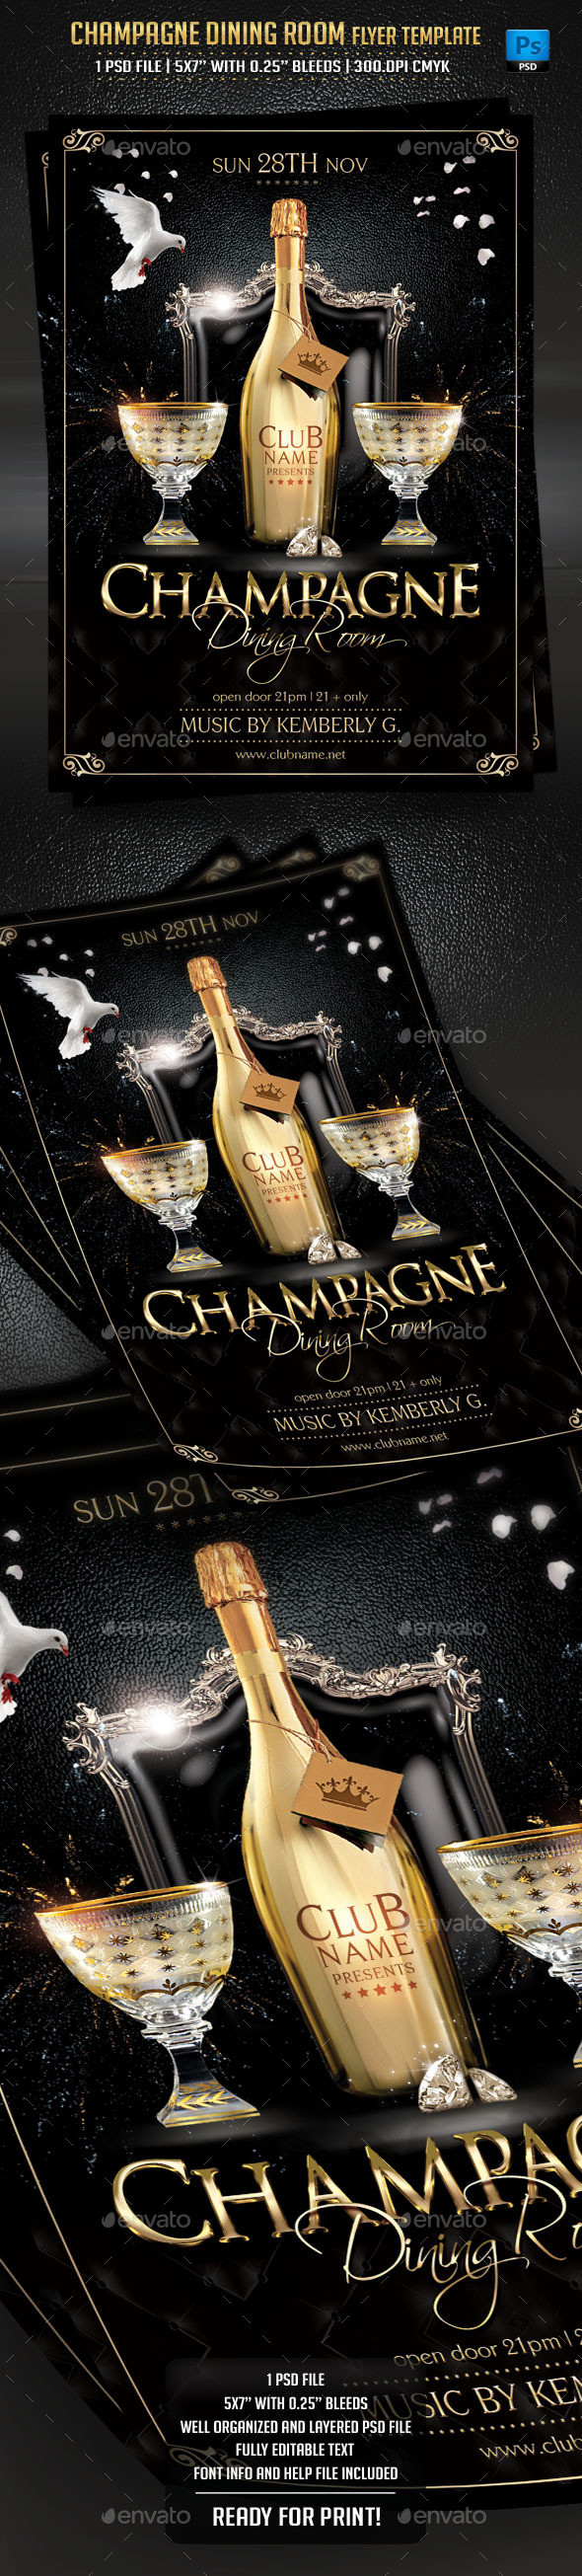 Champagne Dining Room Flyer Template - Clubs & Parties Events